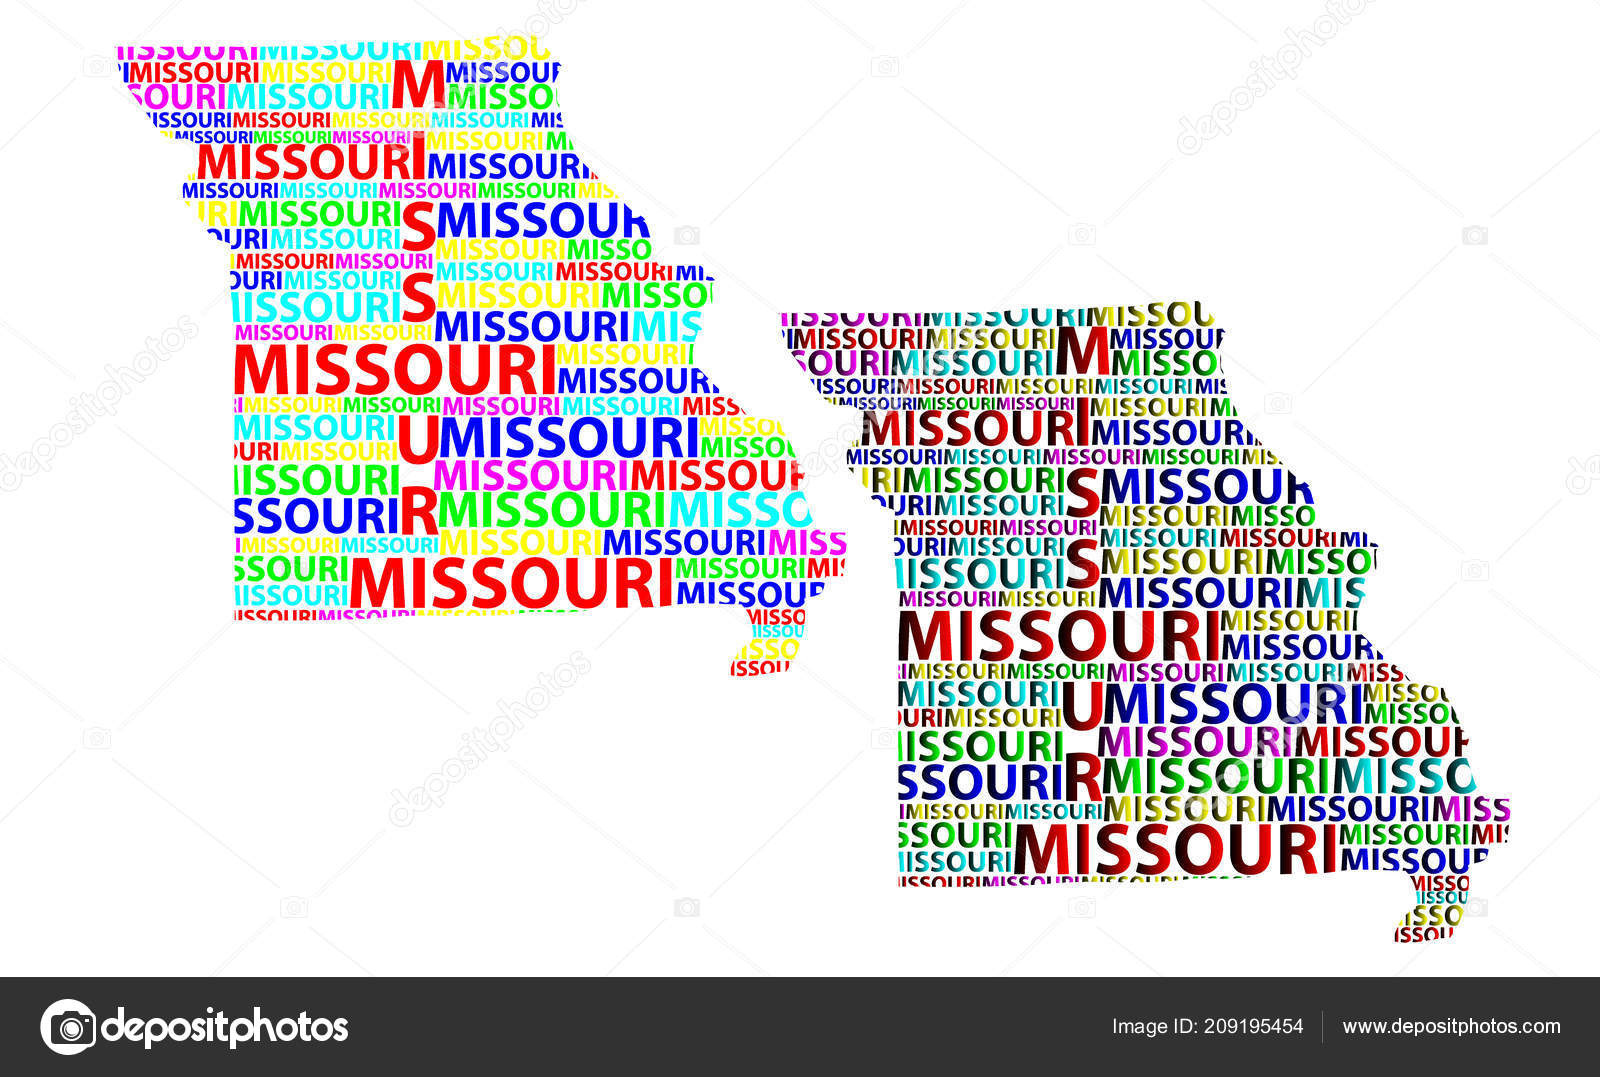 Sketch Missouri United States America Letter Text Map Missouri Map